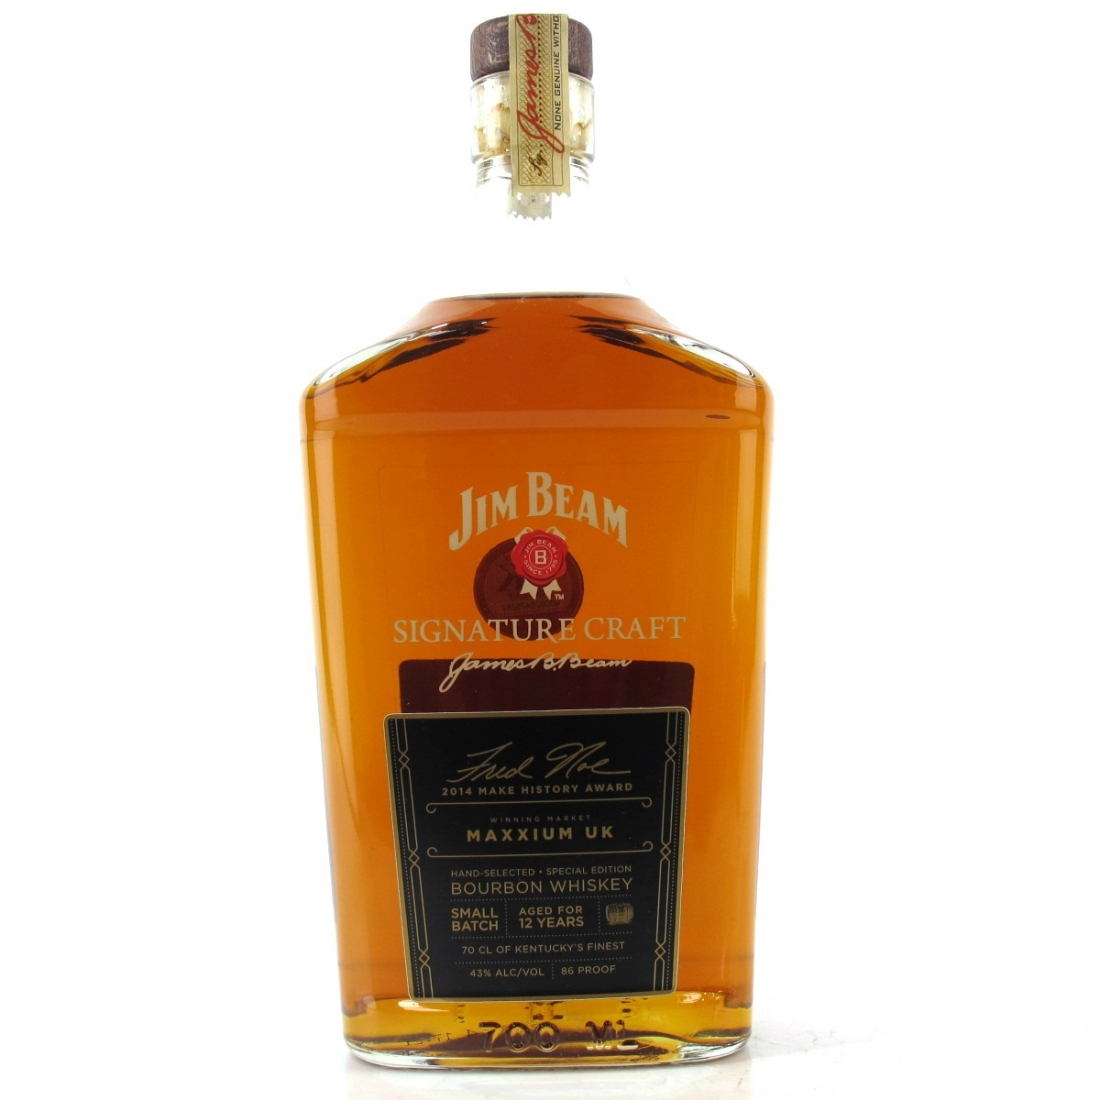 Jim Beam Signature Craft 12 Year Old / 2014 Make History Award